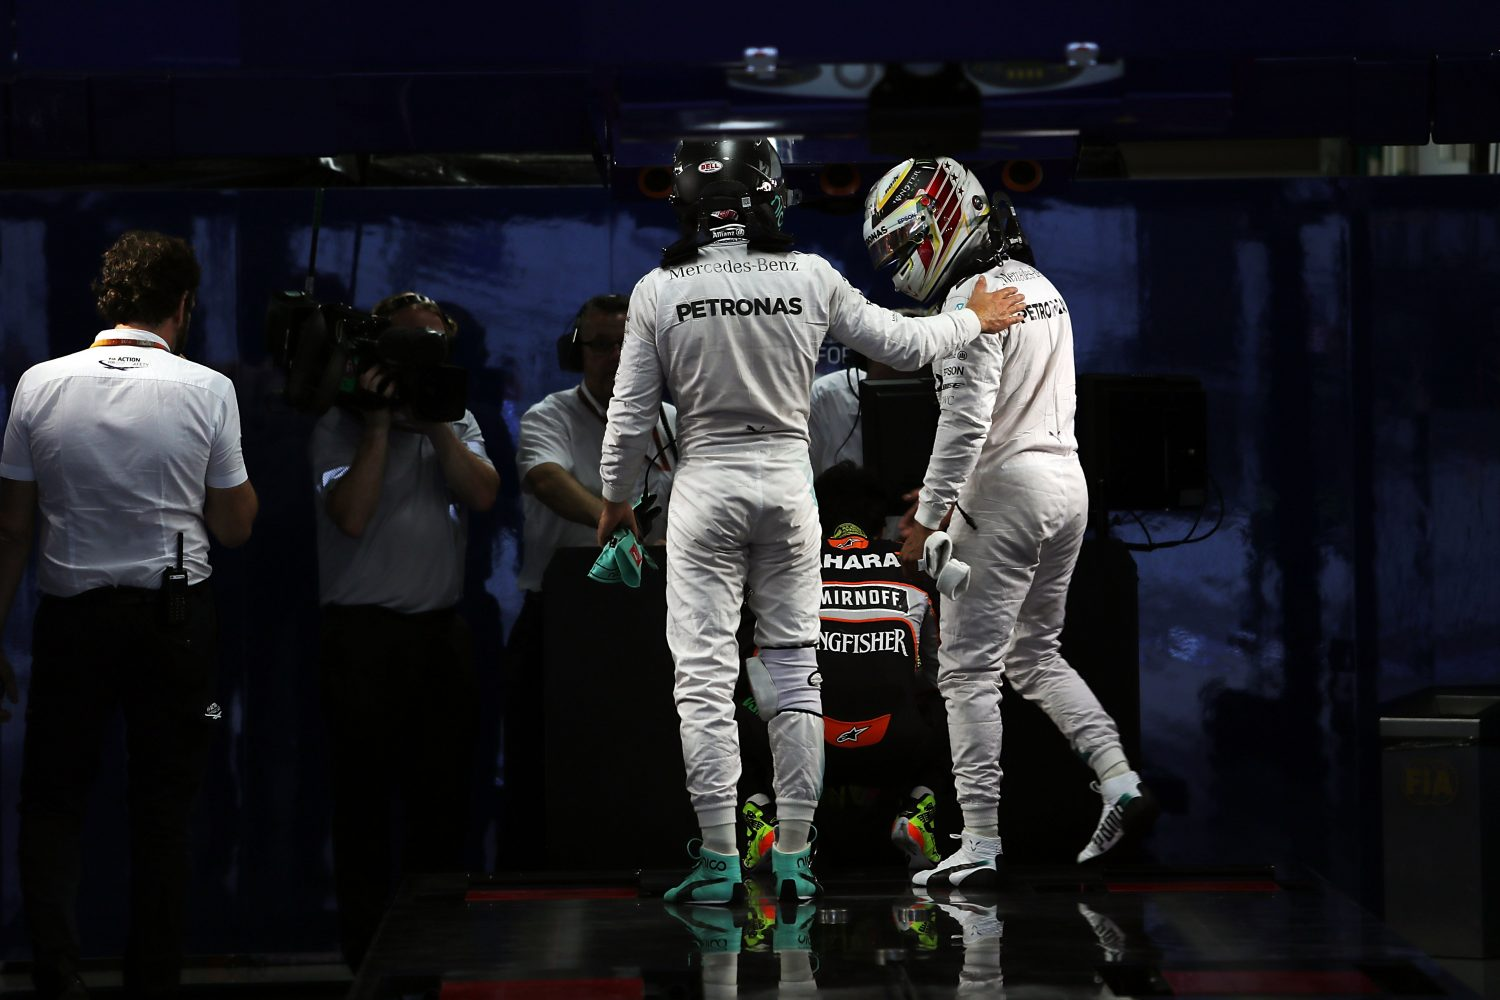 Formula One World Championship 2016, Round 17, Japanese Grand Prix, Suzuka, Japan, Saturday 8 October 2016 - L to R): Nico Rosberg (GER) Mercedes AMG F1 and team mate Lewis Hamilton (GBR) Mercedes AMG F1 in parc ferme.